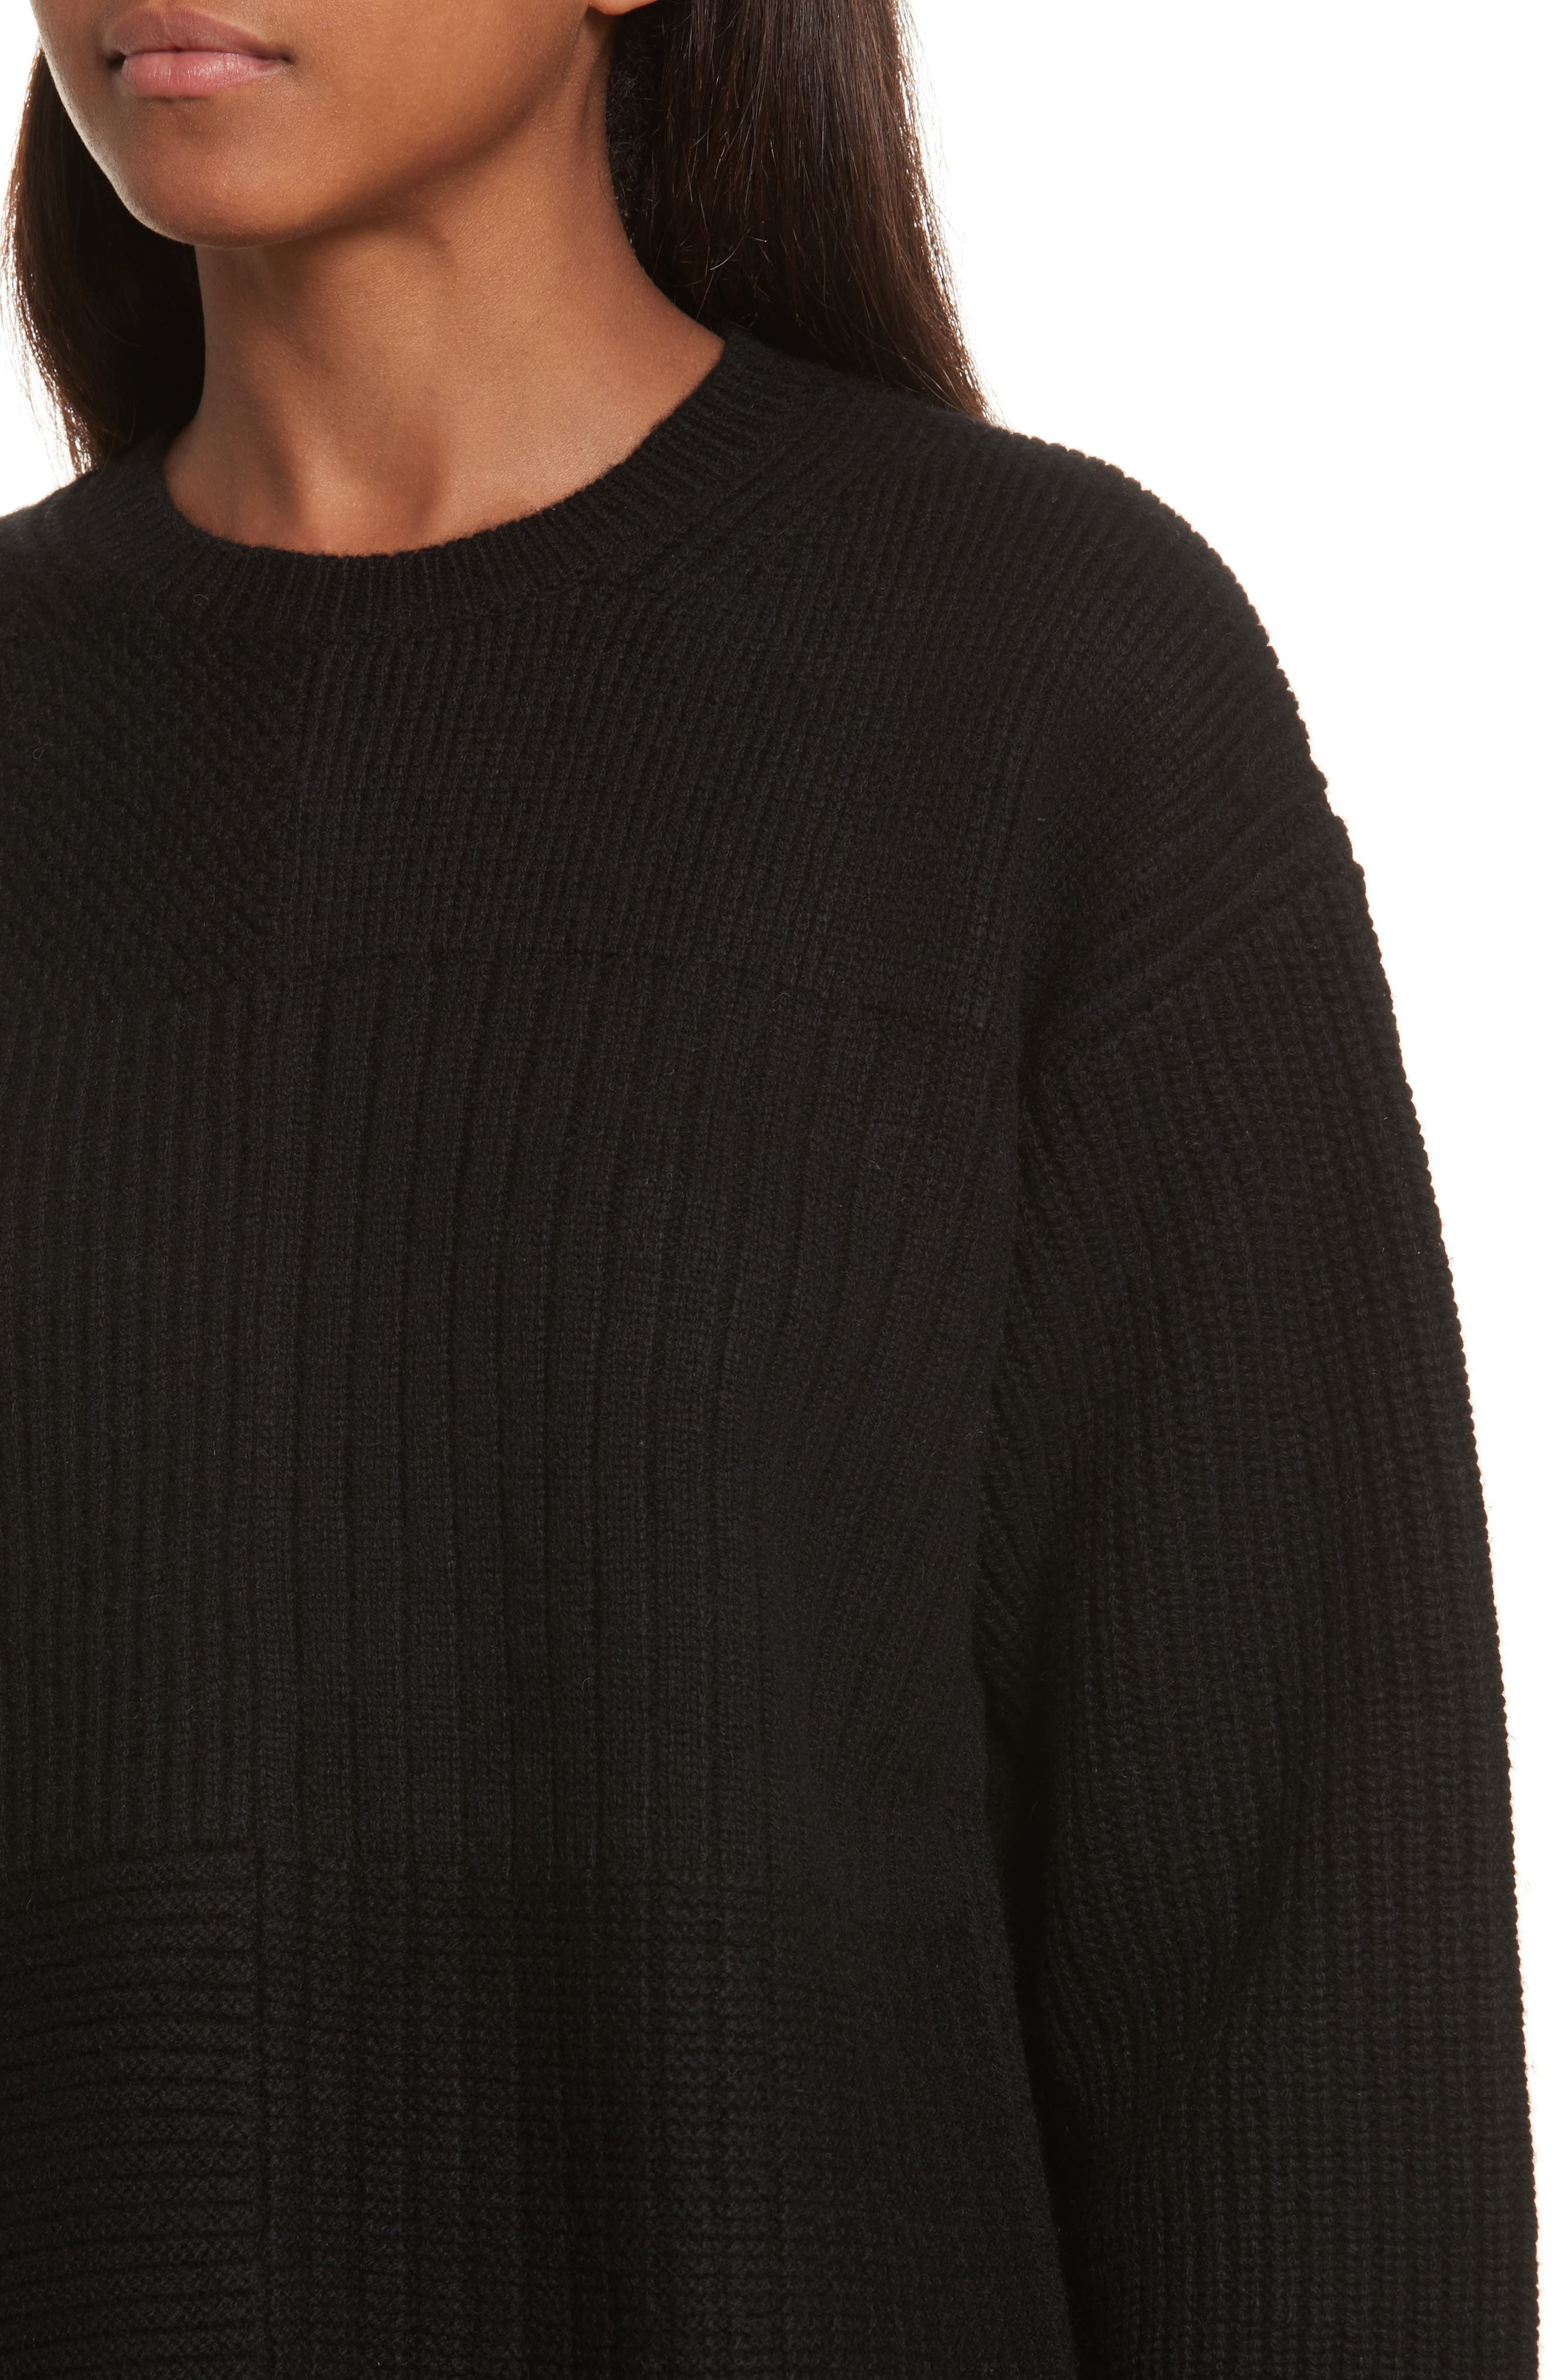 Wool Blend Textured Pullover,                             Alternate thumbnail 4, color,                             001